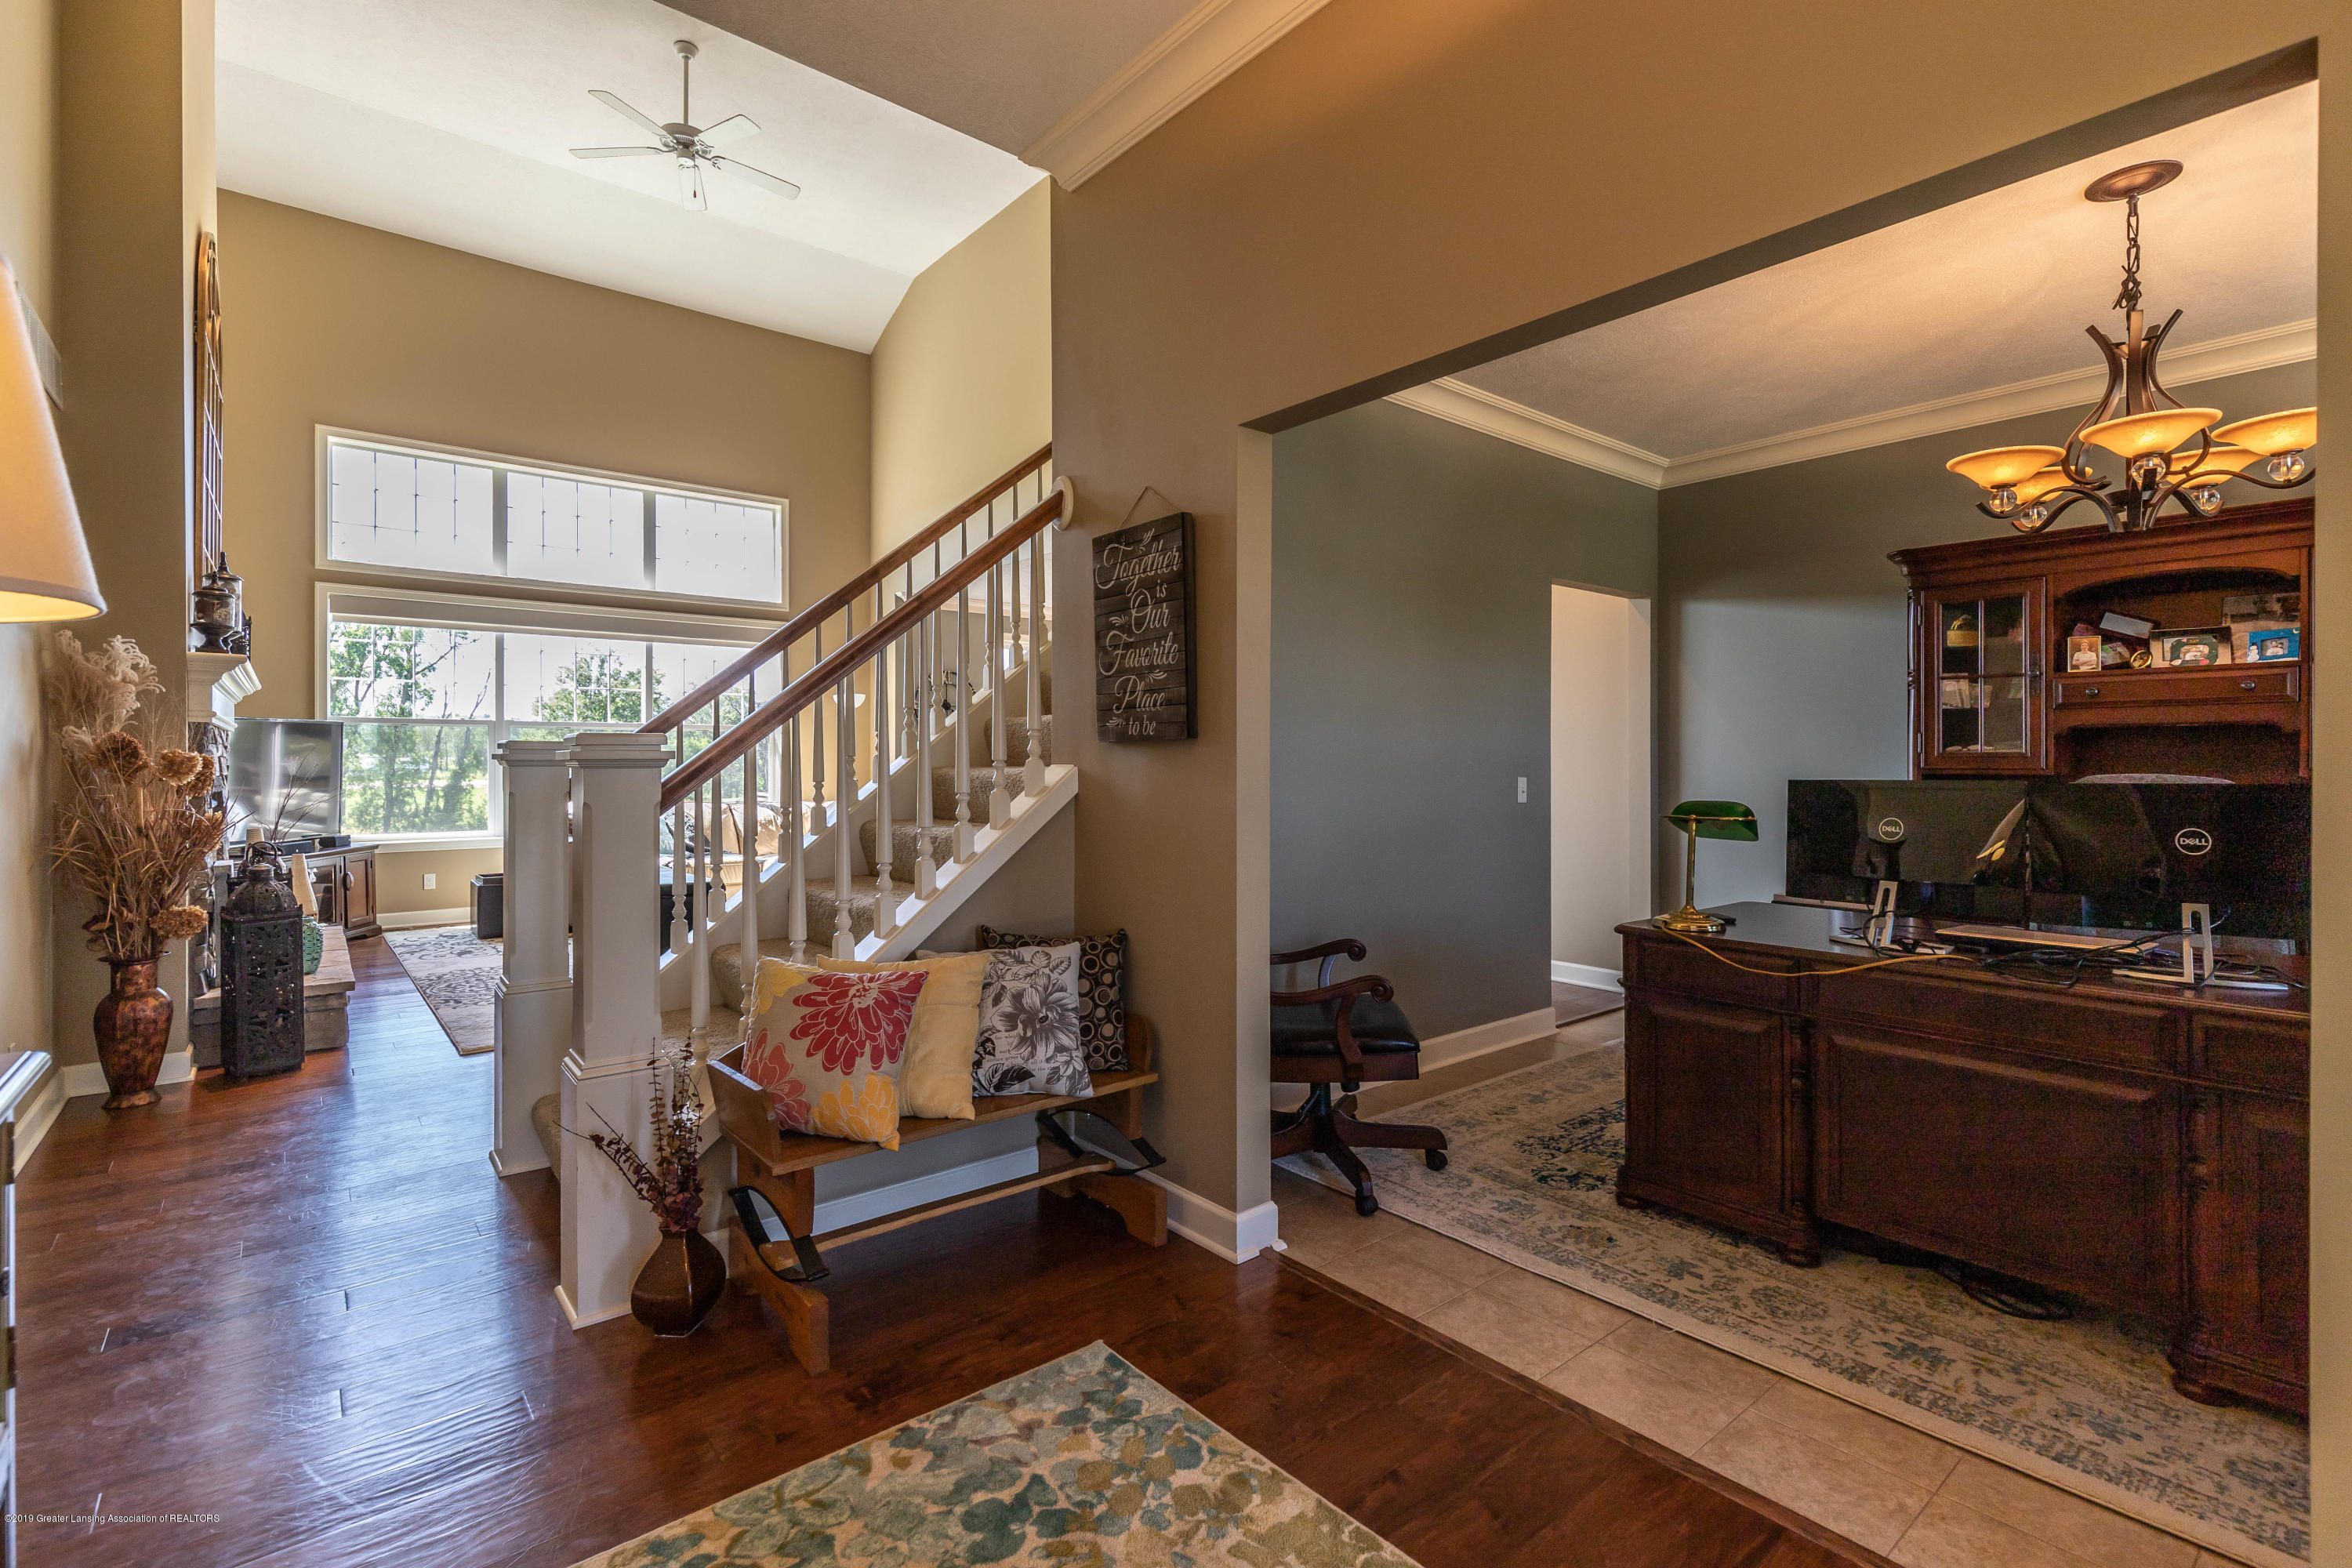 11840 Murano Dr - Foyer into Dining Room - 4